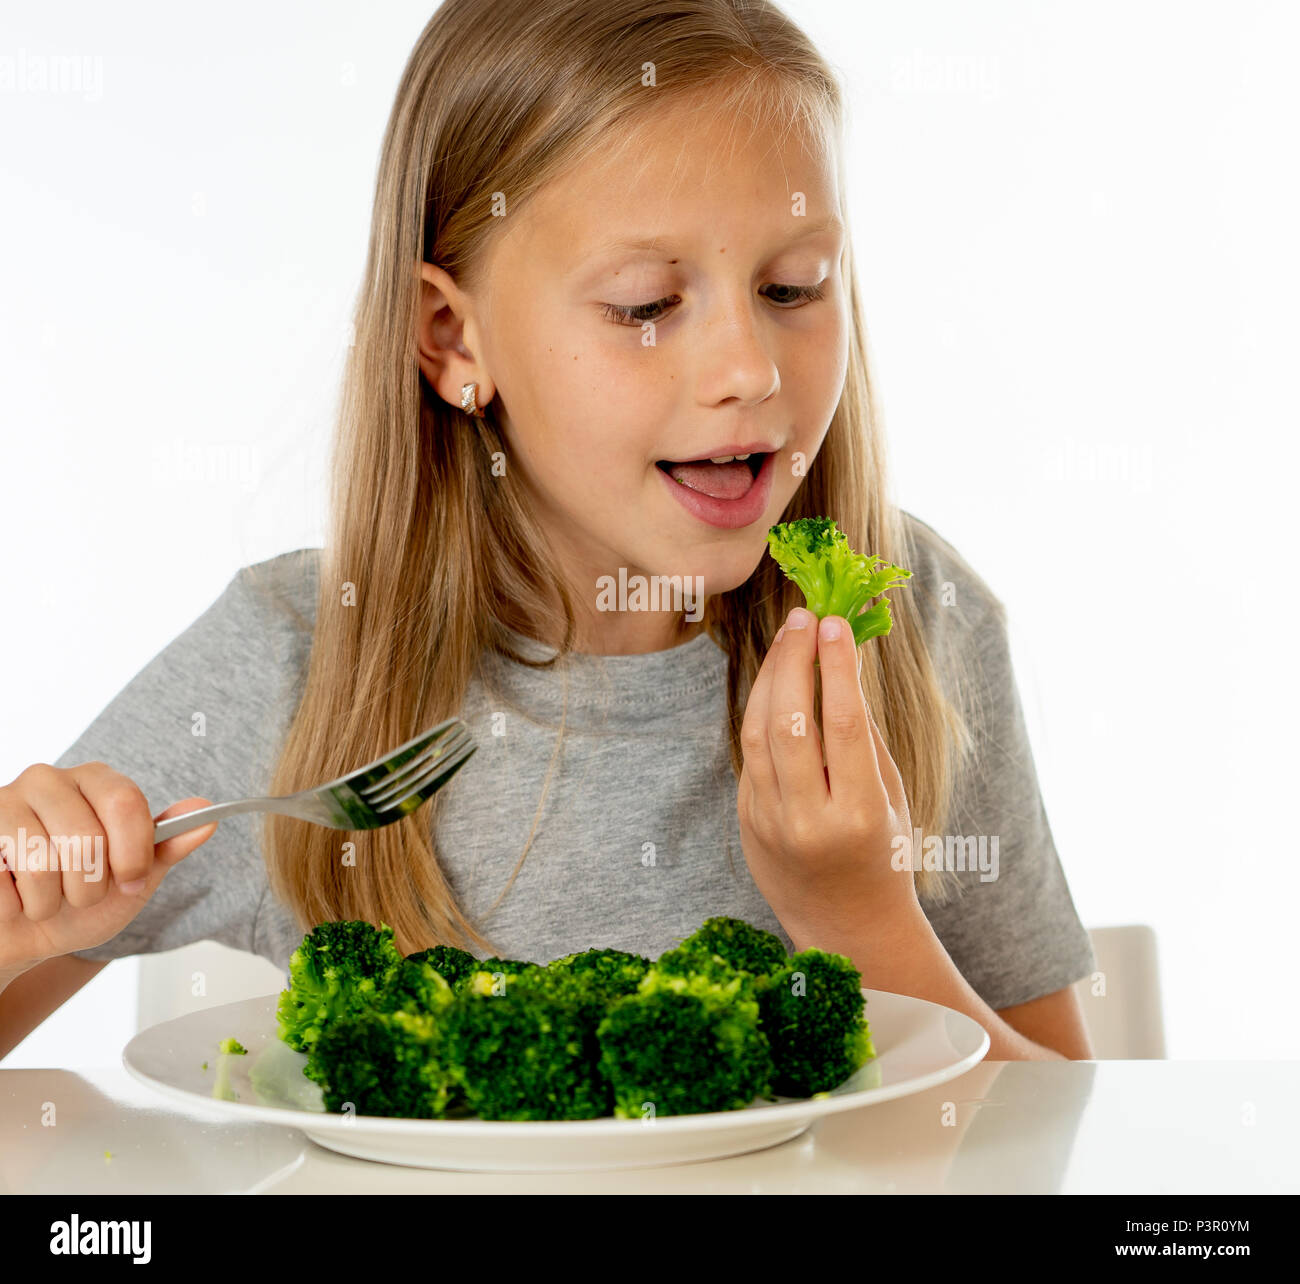 895428cb happy young blonde girl with thumbs up enjoying and loving eating her broccoli  vegetables on a